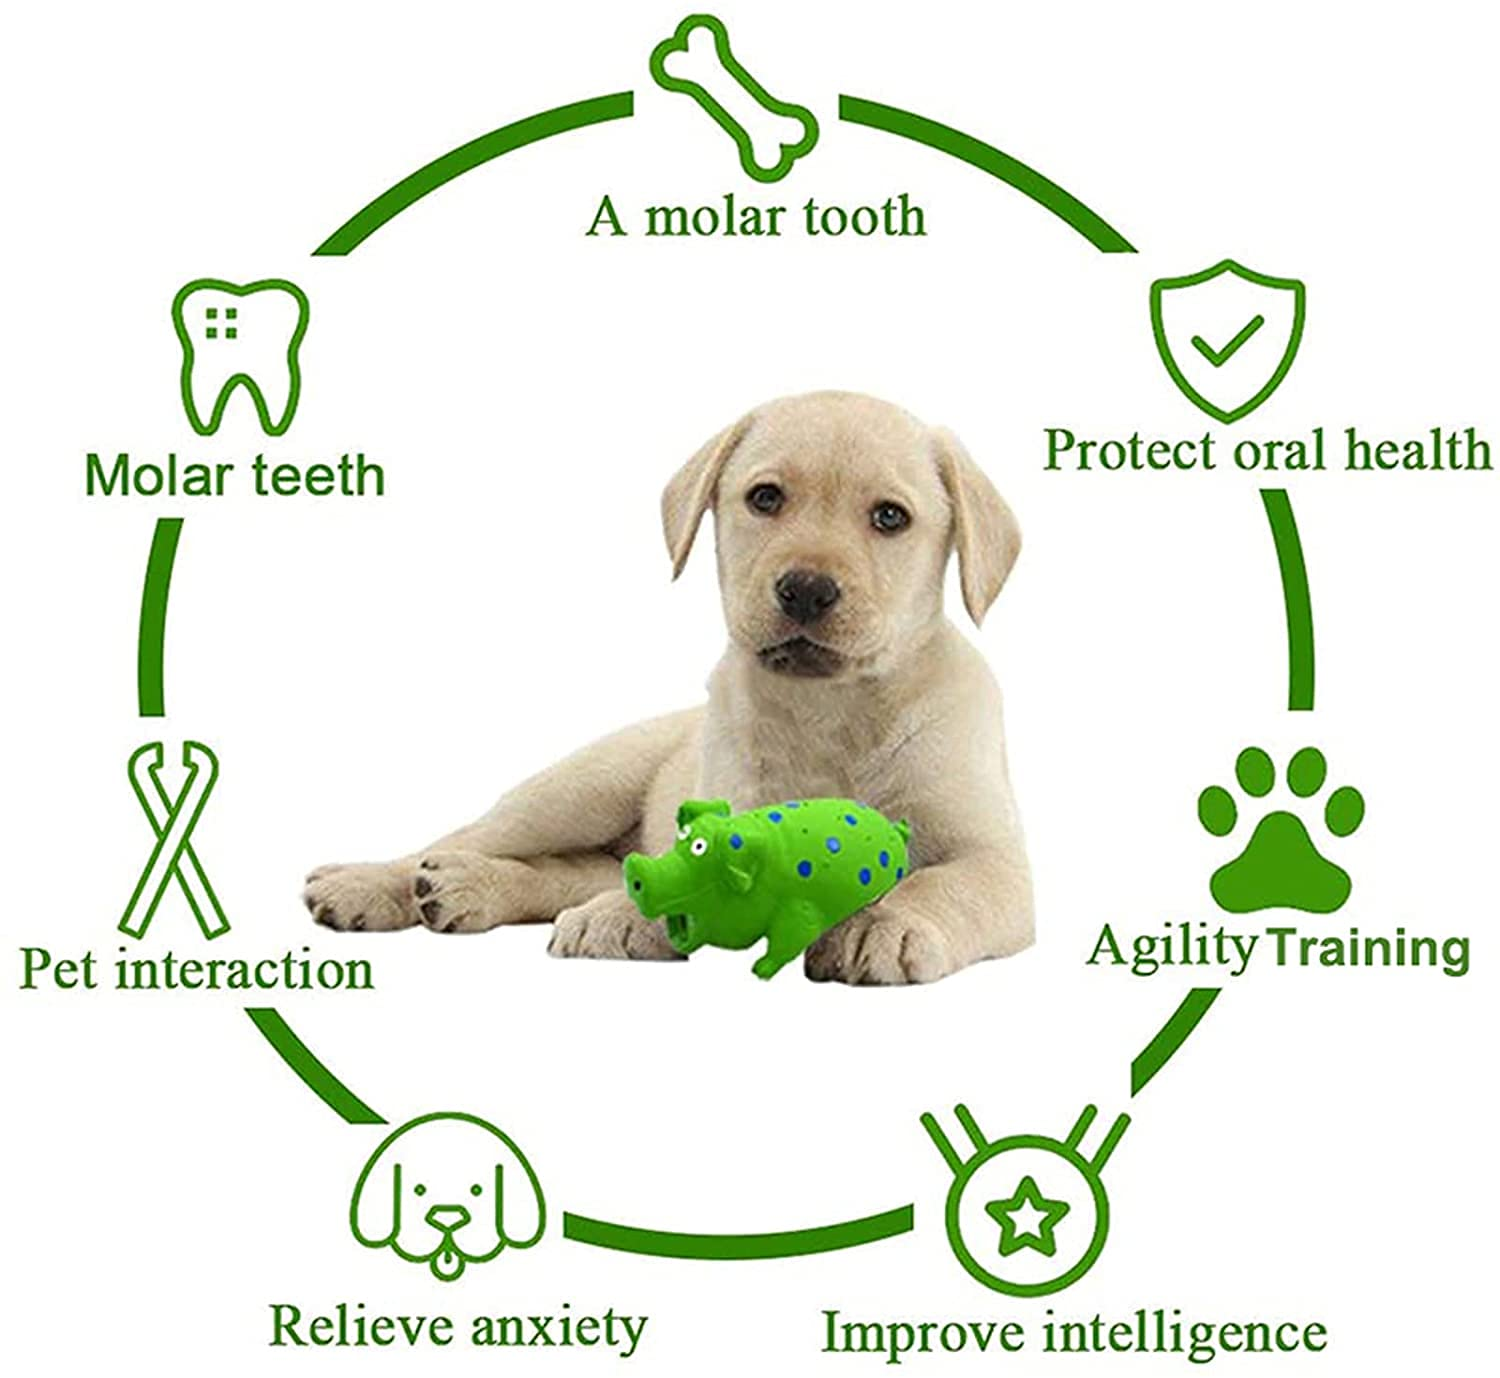 Pets Empire Dog Chew Squeaky Toys, Pig Latex Interactive Puppy Toy, Tough Durable Strong Toothbrush Teething Toys, For Small Medium Dogs-1 Piece